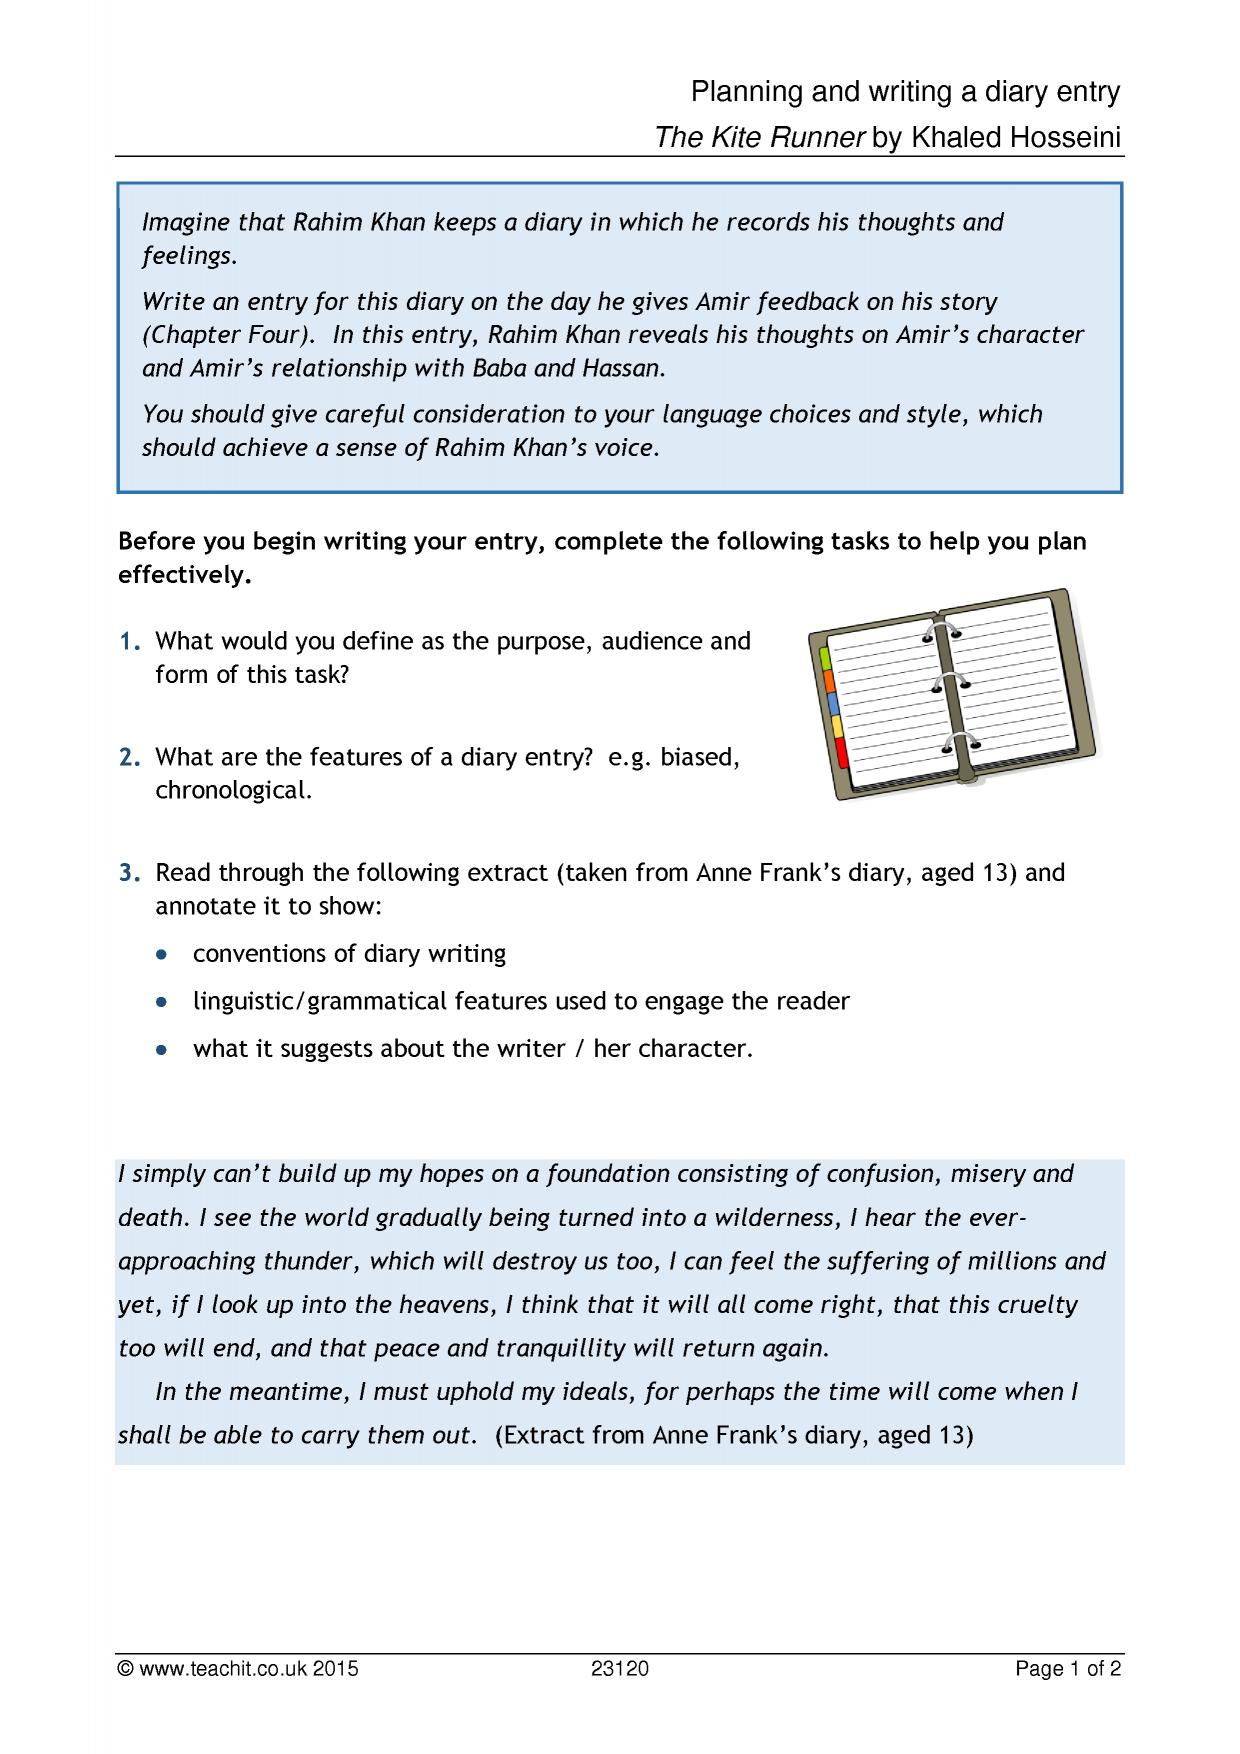 Worksheets Diary Of Anne Frank Worksheets anne frank search results teachit english 2 preview